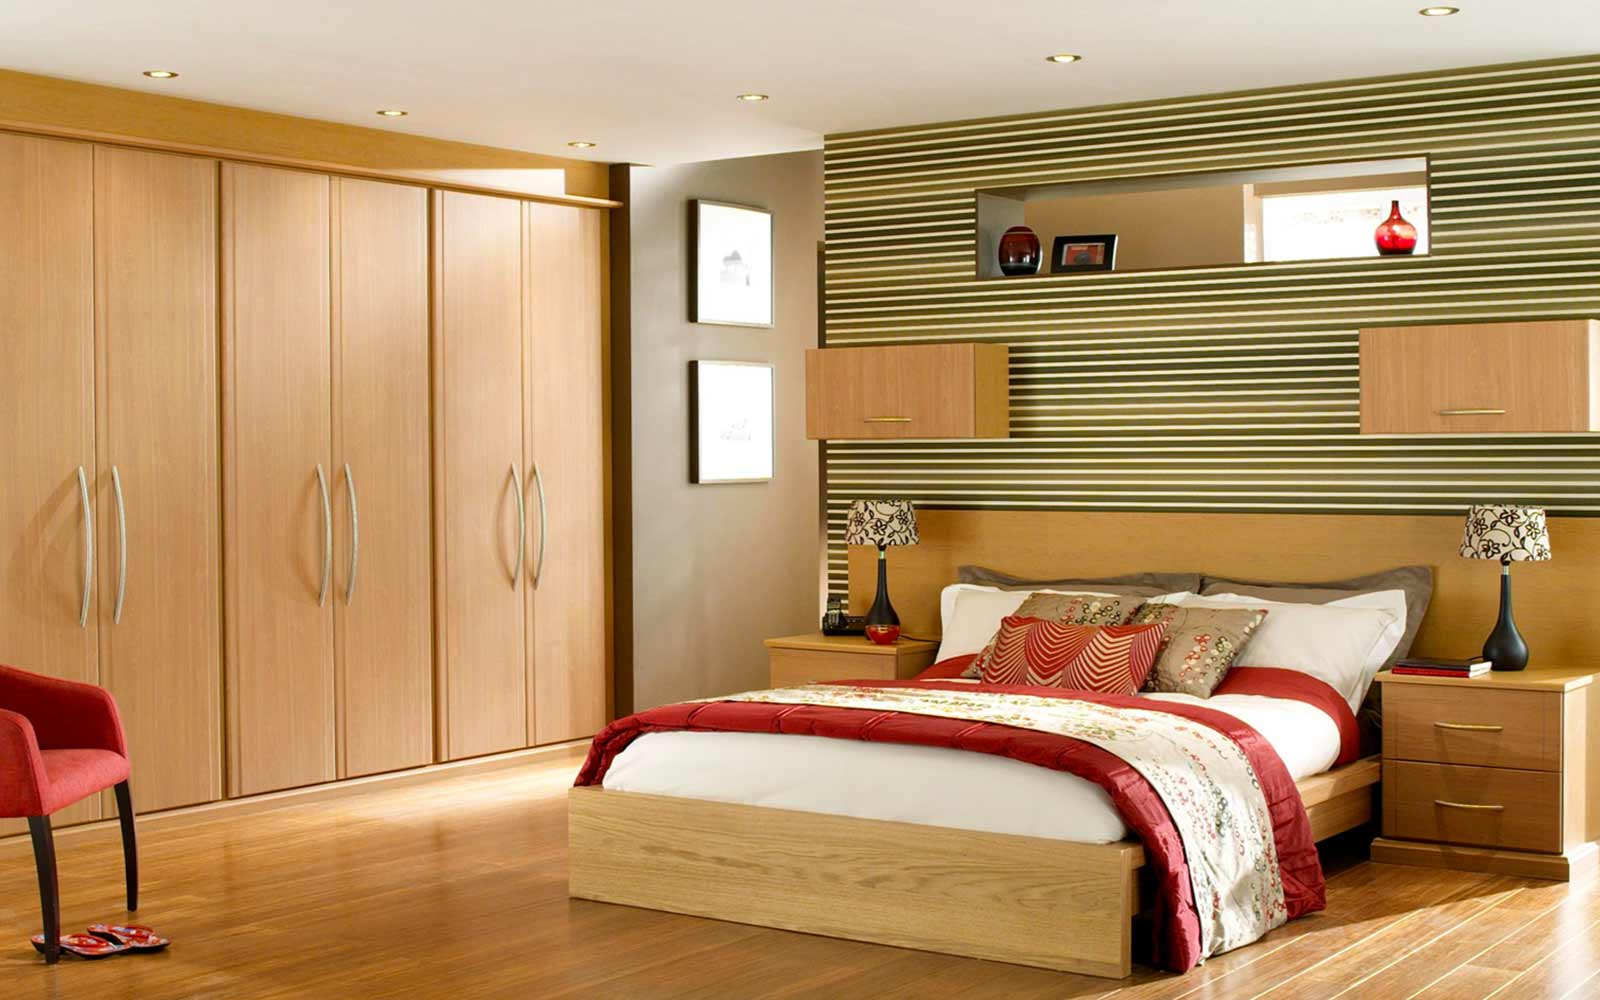 35 images of wardrobe designs for bedrooms for Simple indian bedroom interior design ideas